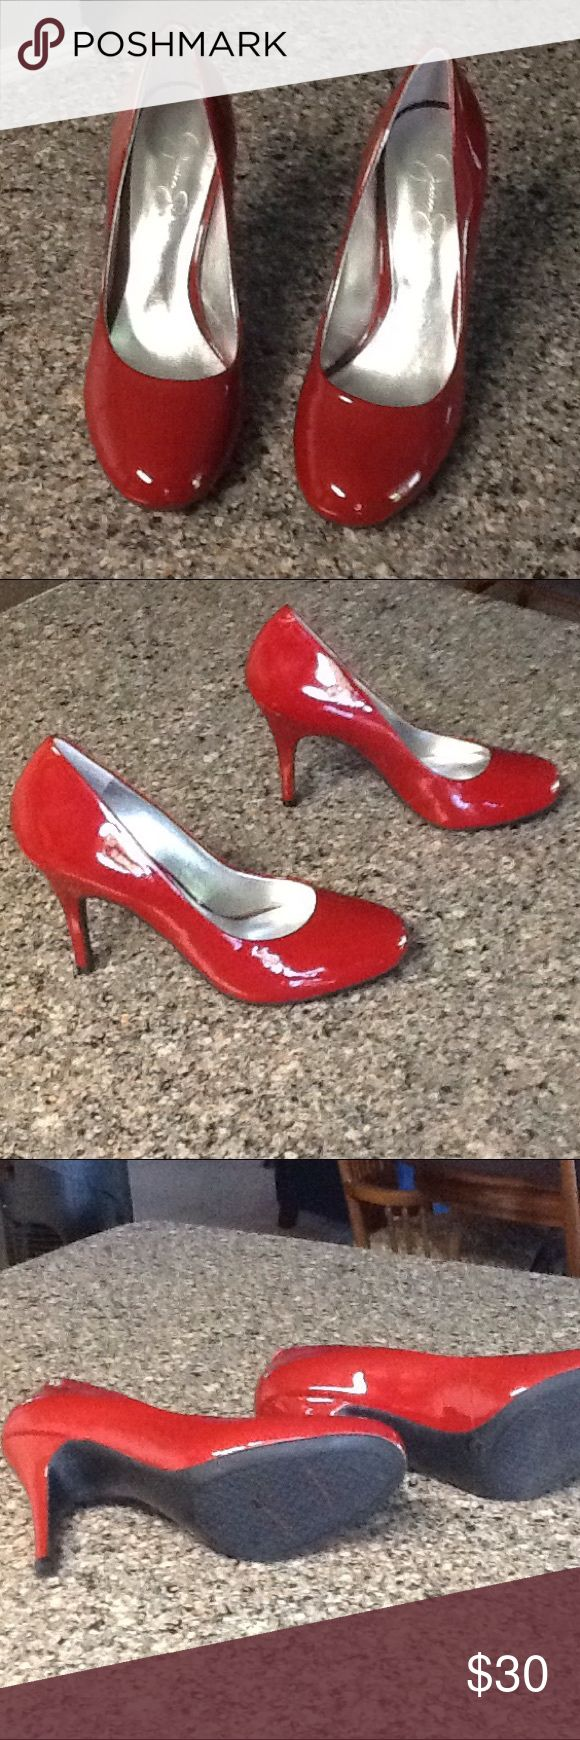 Jessica Simpson Red High Heels July 2017